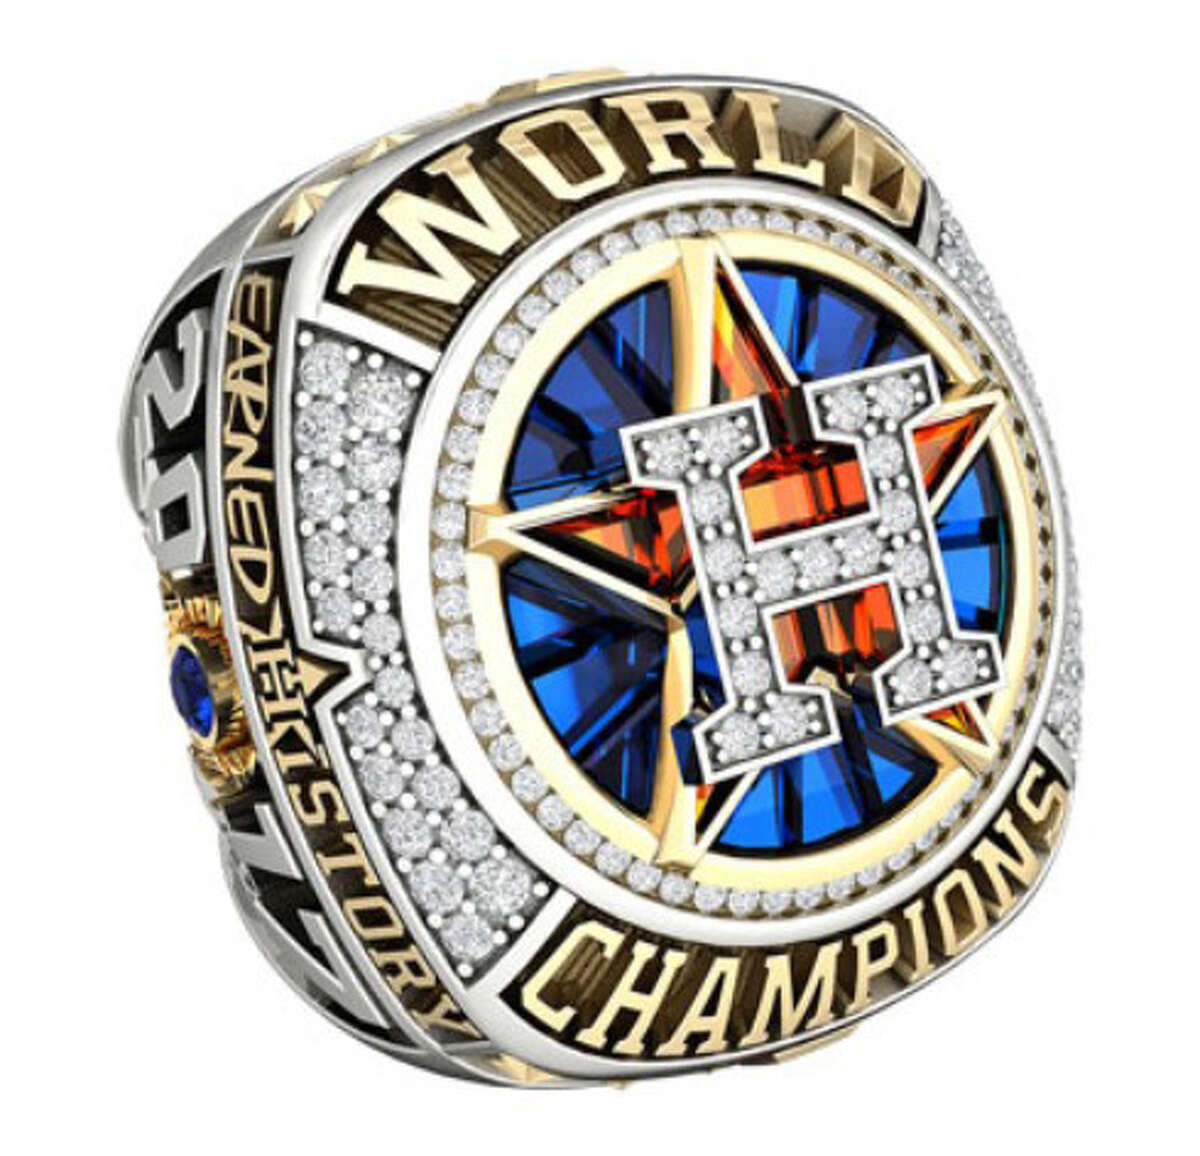 JOSTENS' ASTROS WORLD SERIES JEWELRY COLLECTION Astros limited edition fan ring $11,112